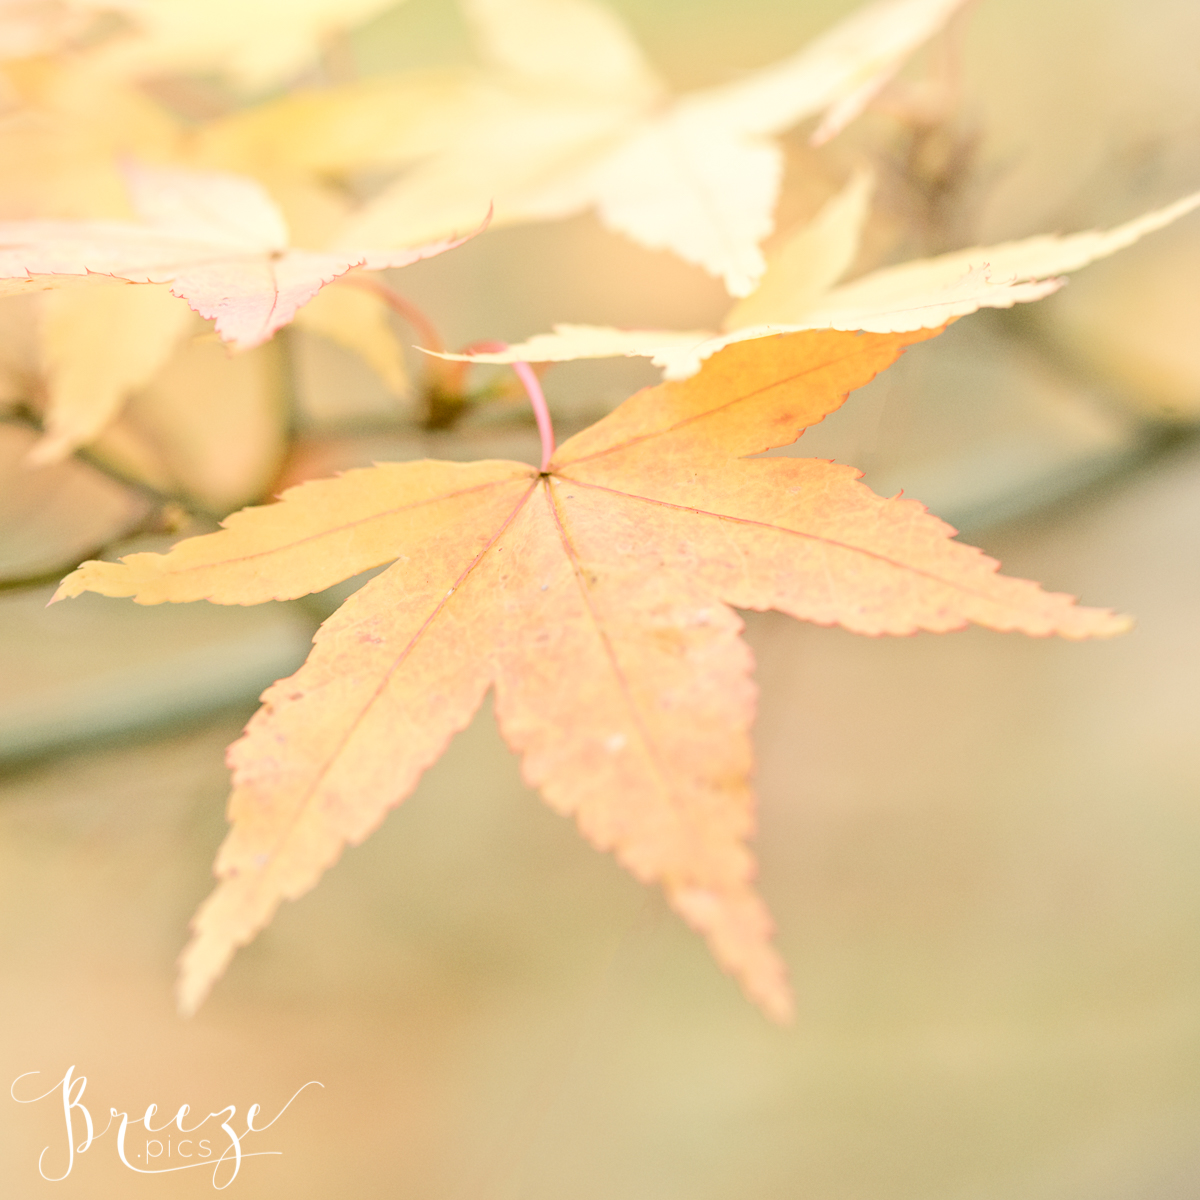 Autumn Leaf Macro Nature Photograph Study, Limited Edition Fine Art Print, Bernadette Meyers